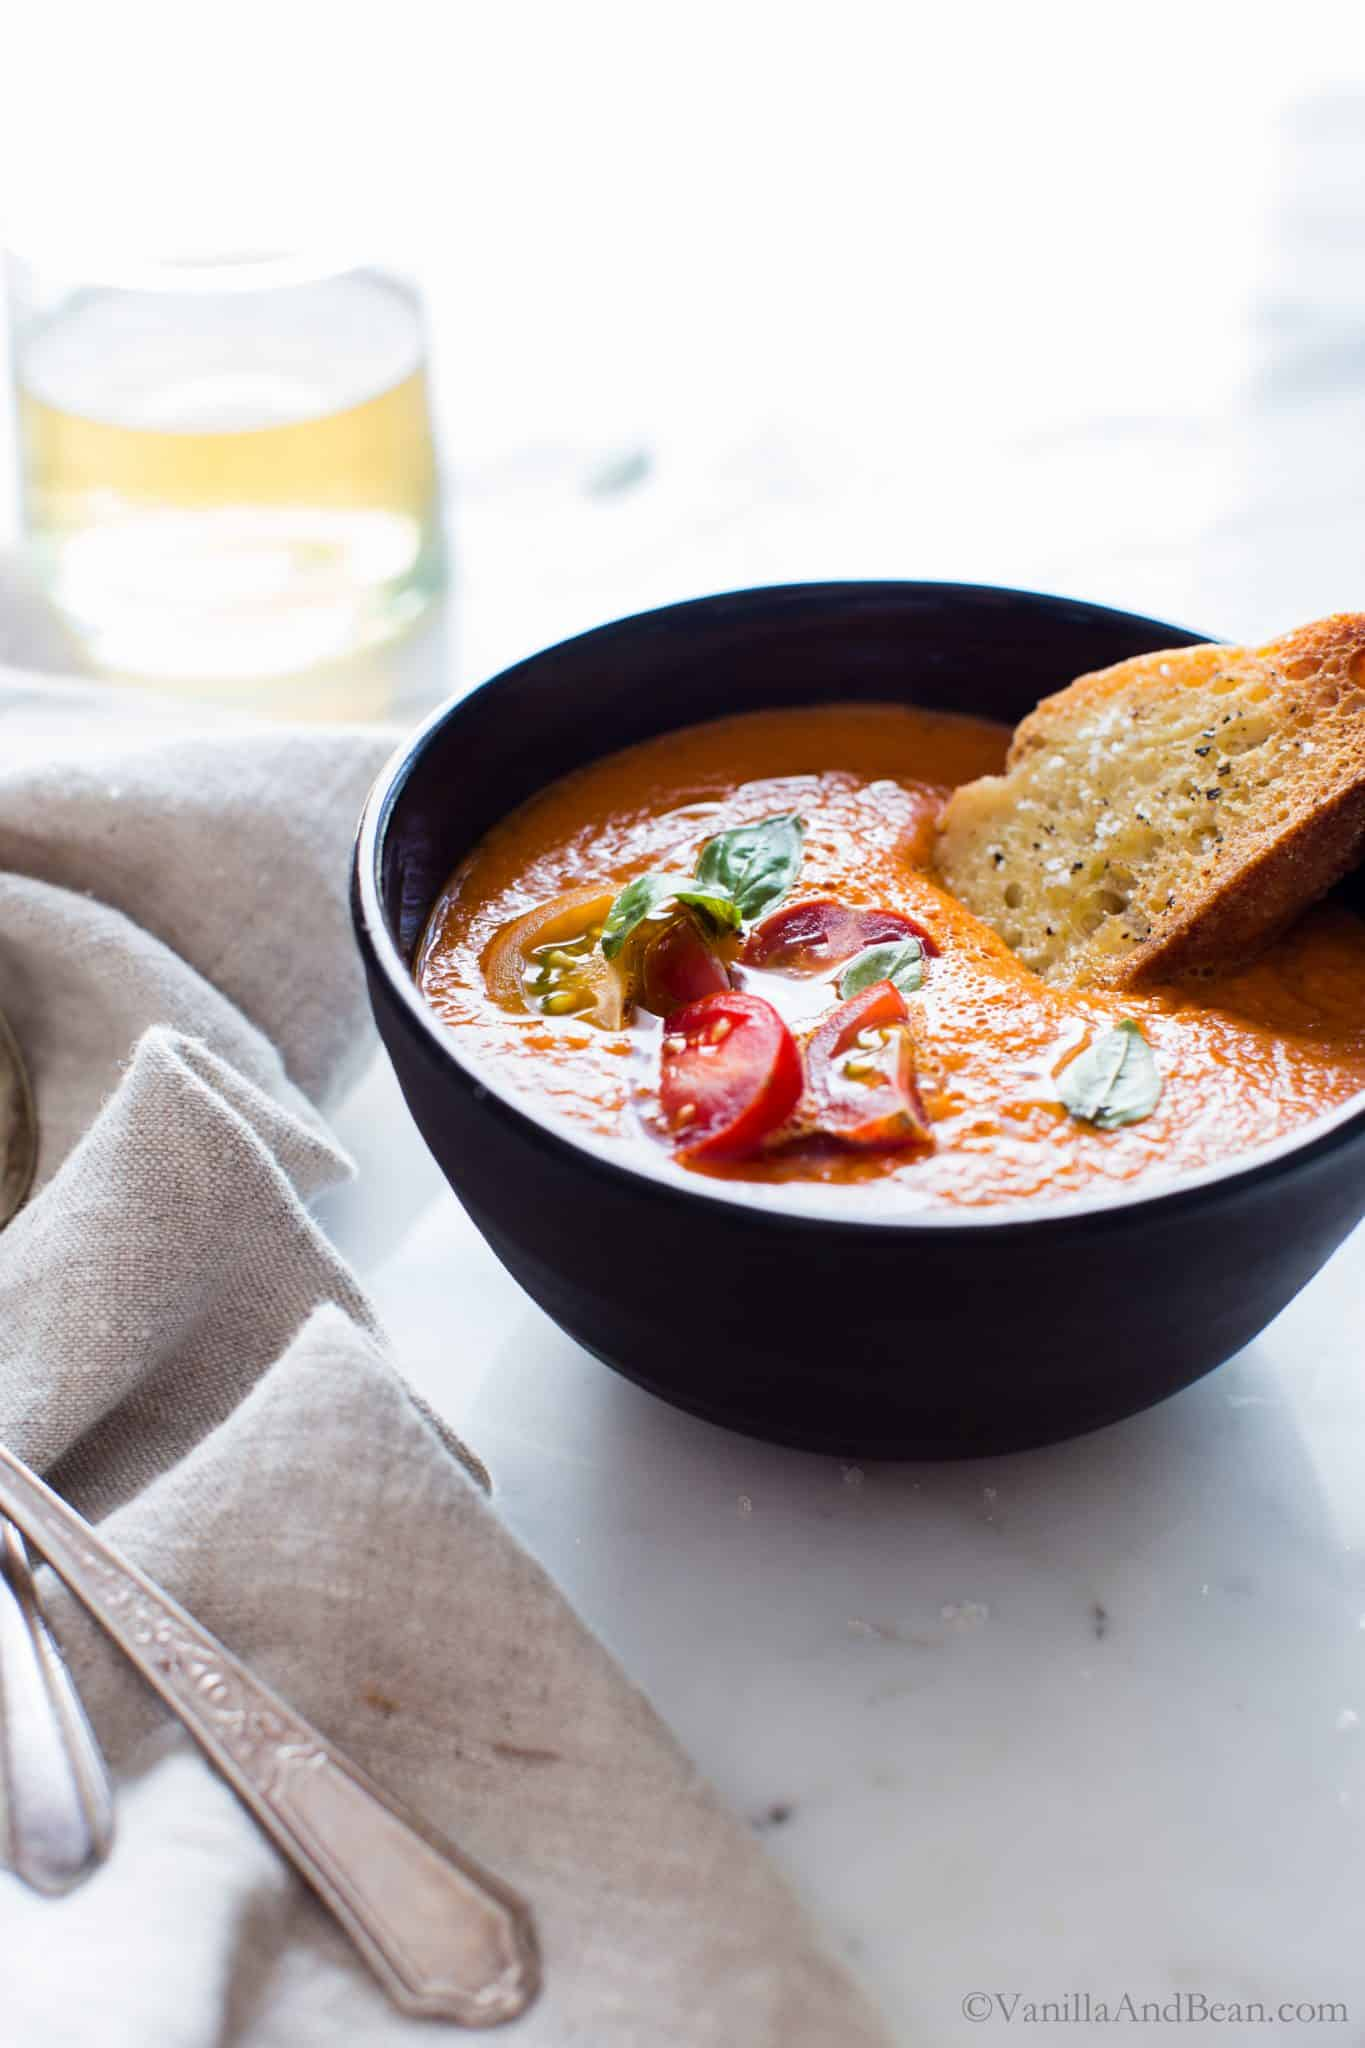 Roasted Red Bell Pepper and Heirloom Tomato Soup in a bowl with a slice of bread ready for sharing.